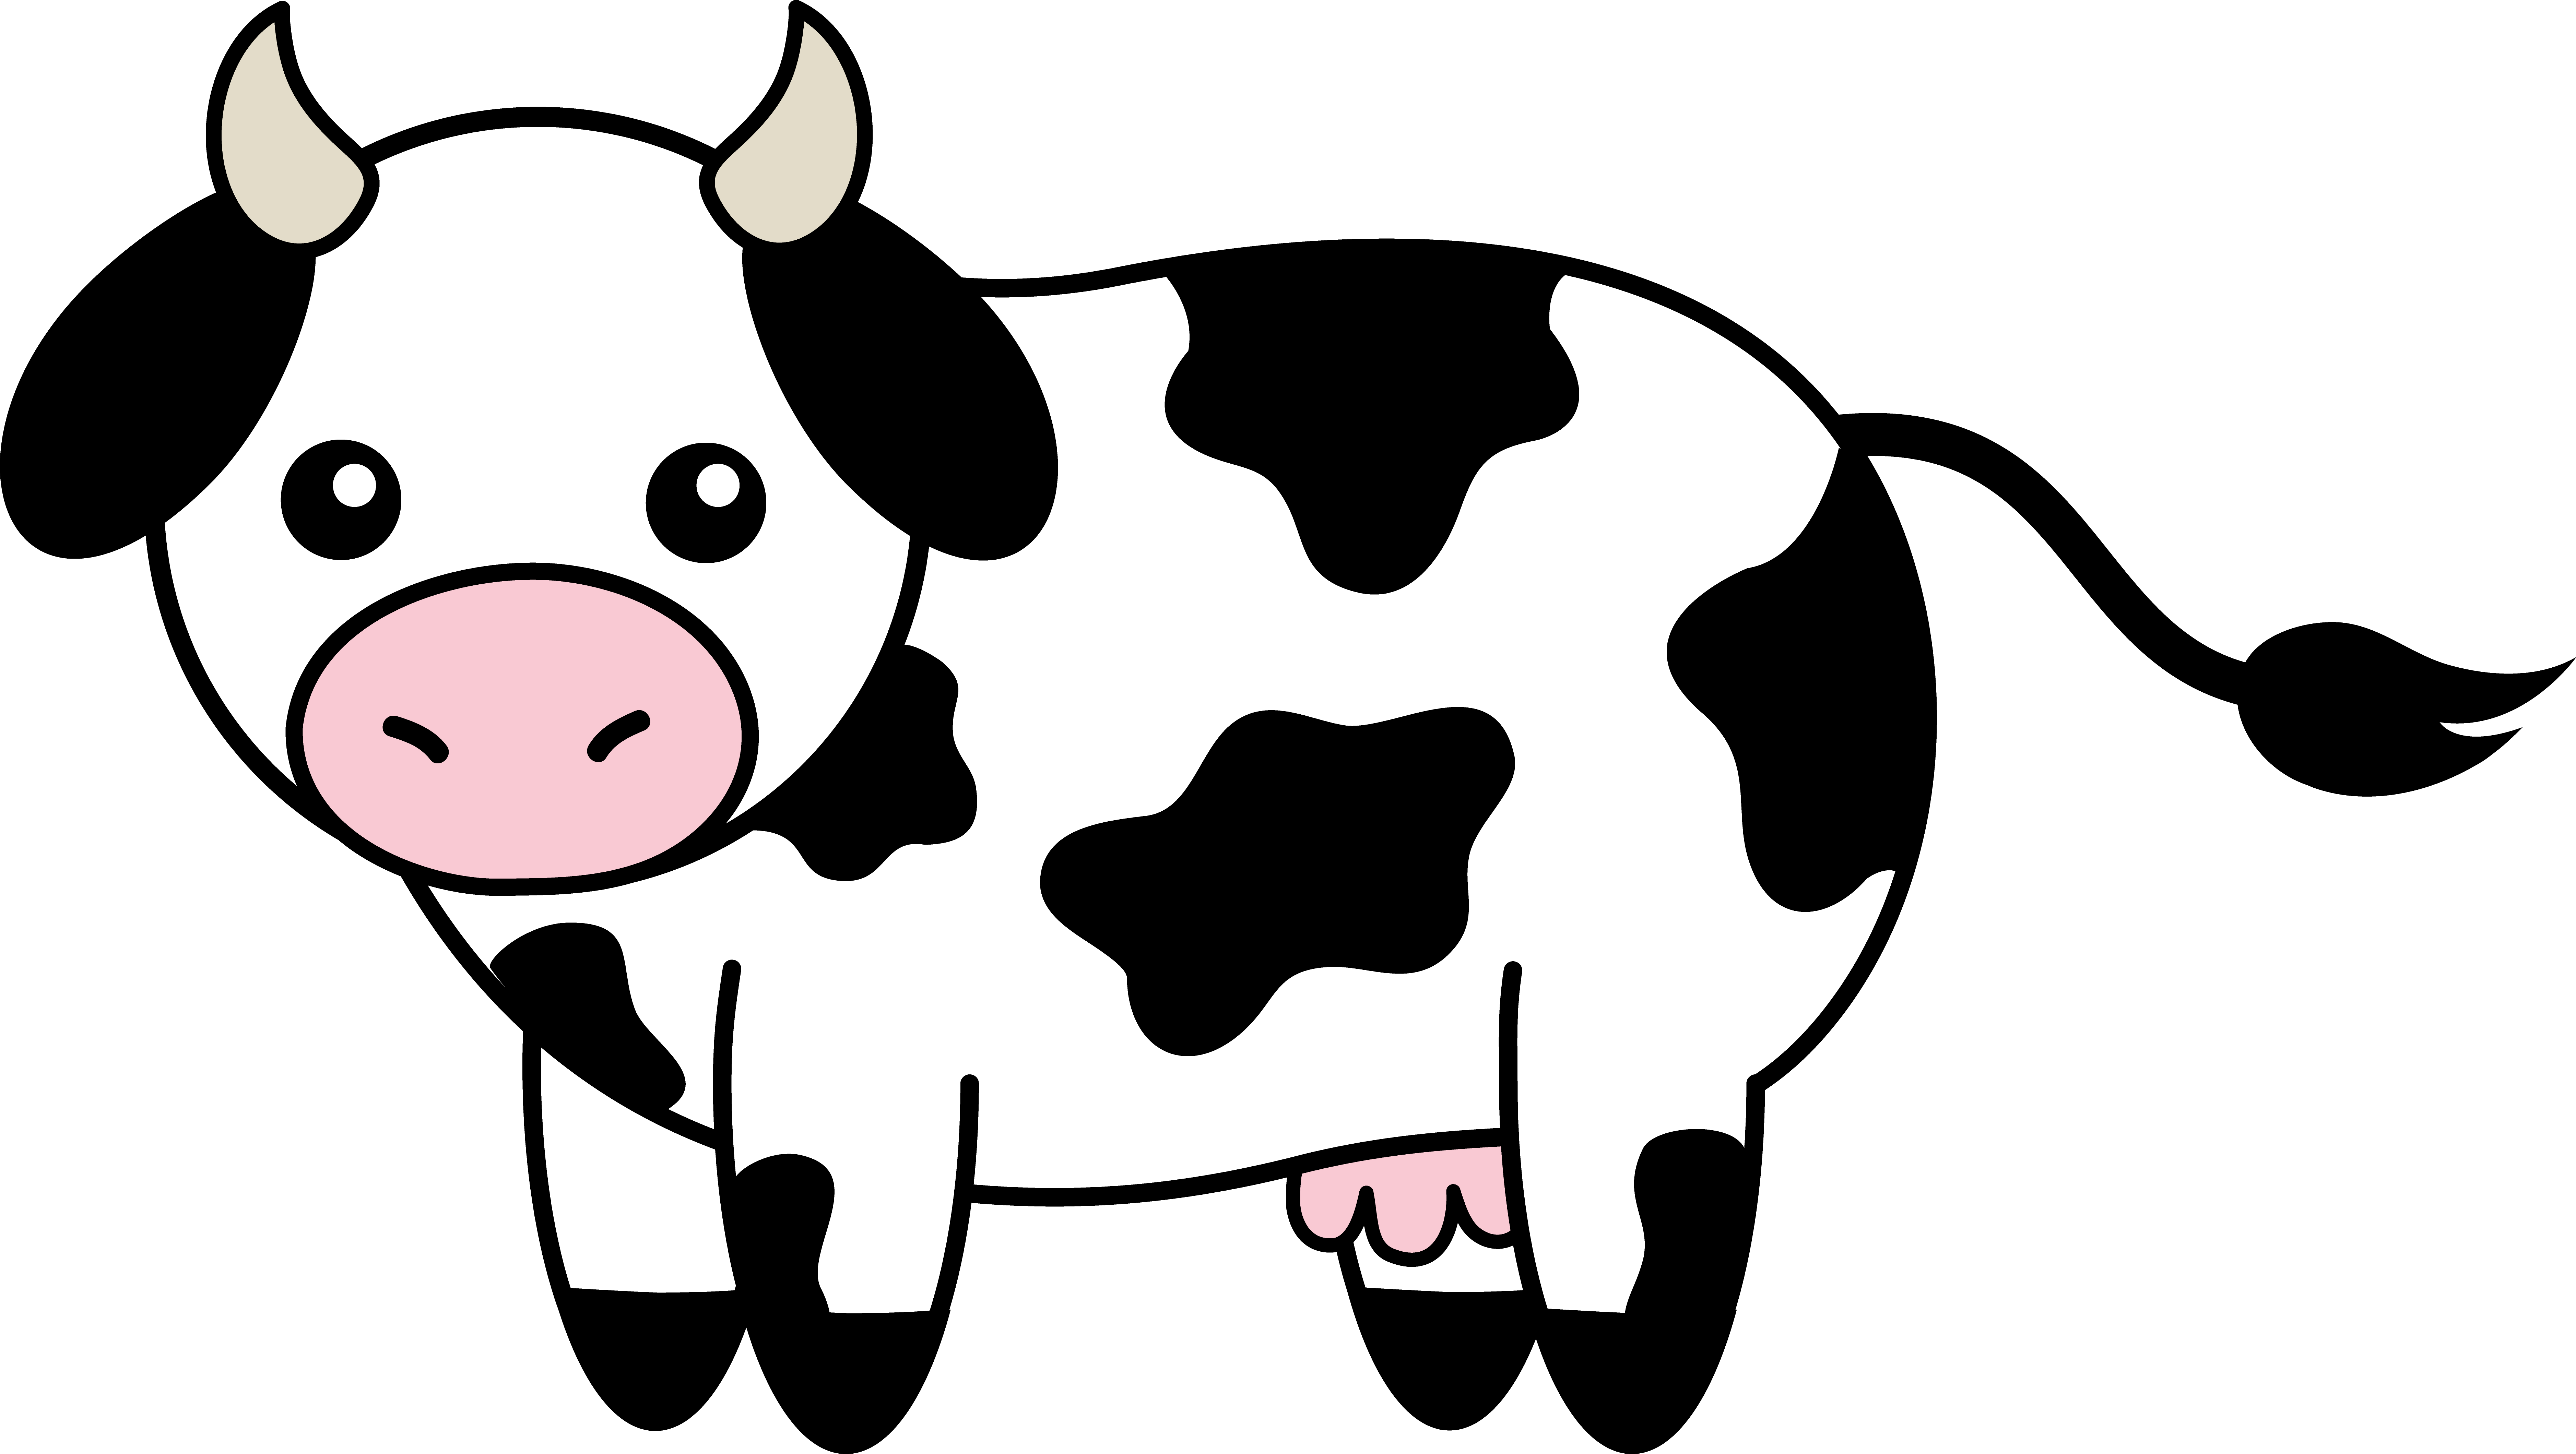 Cow clipart #1, Download drawings